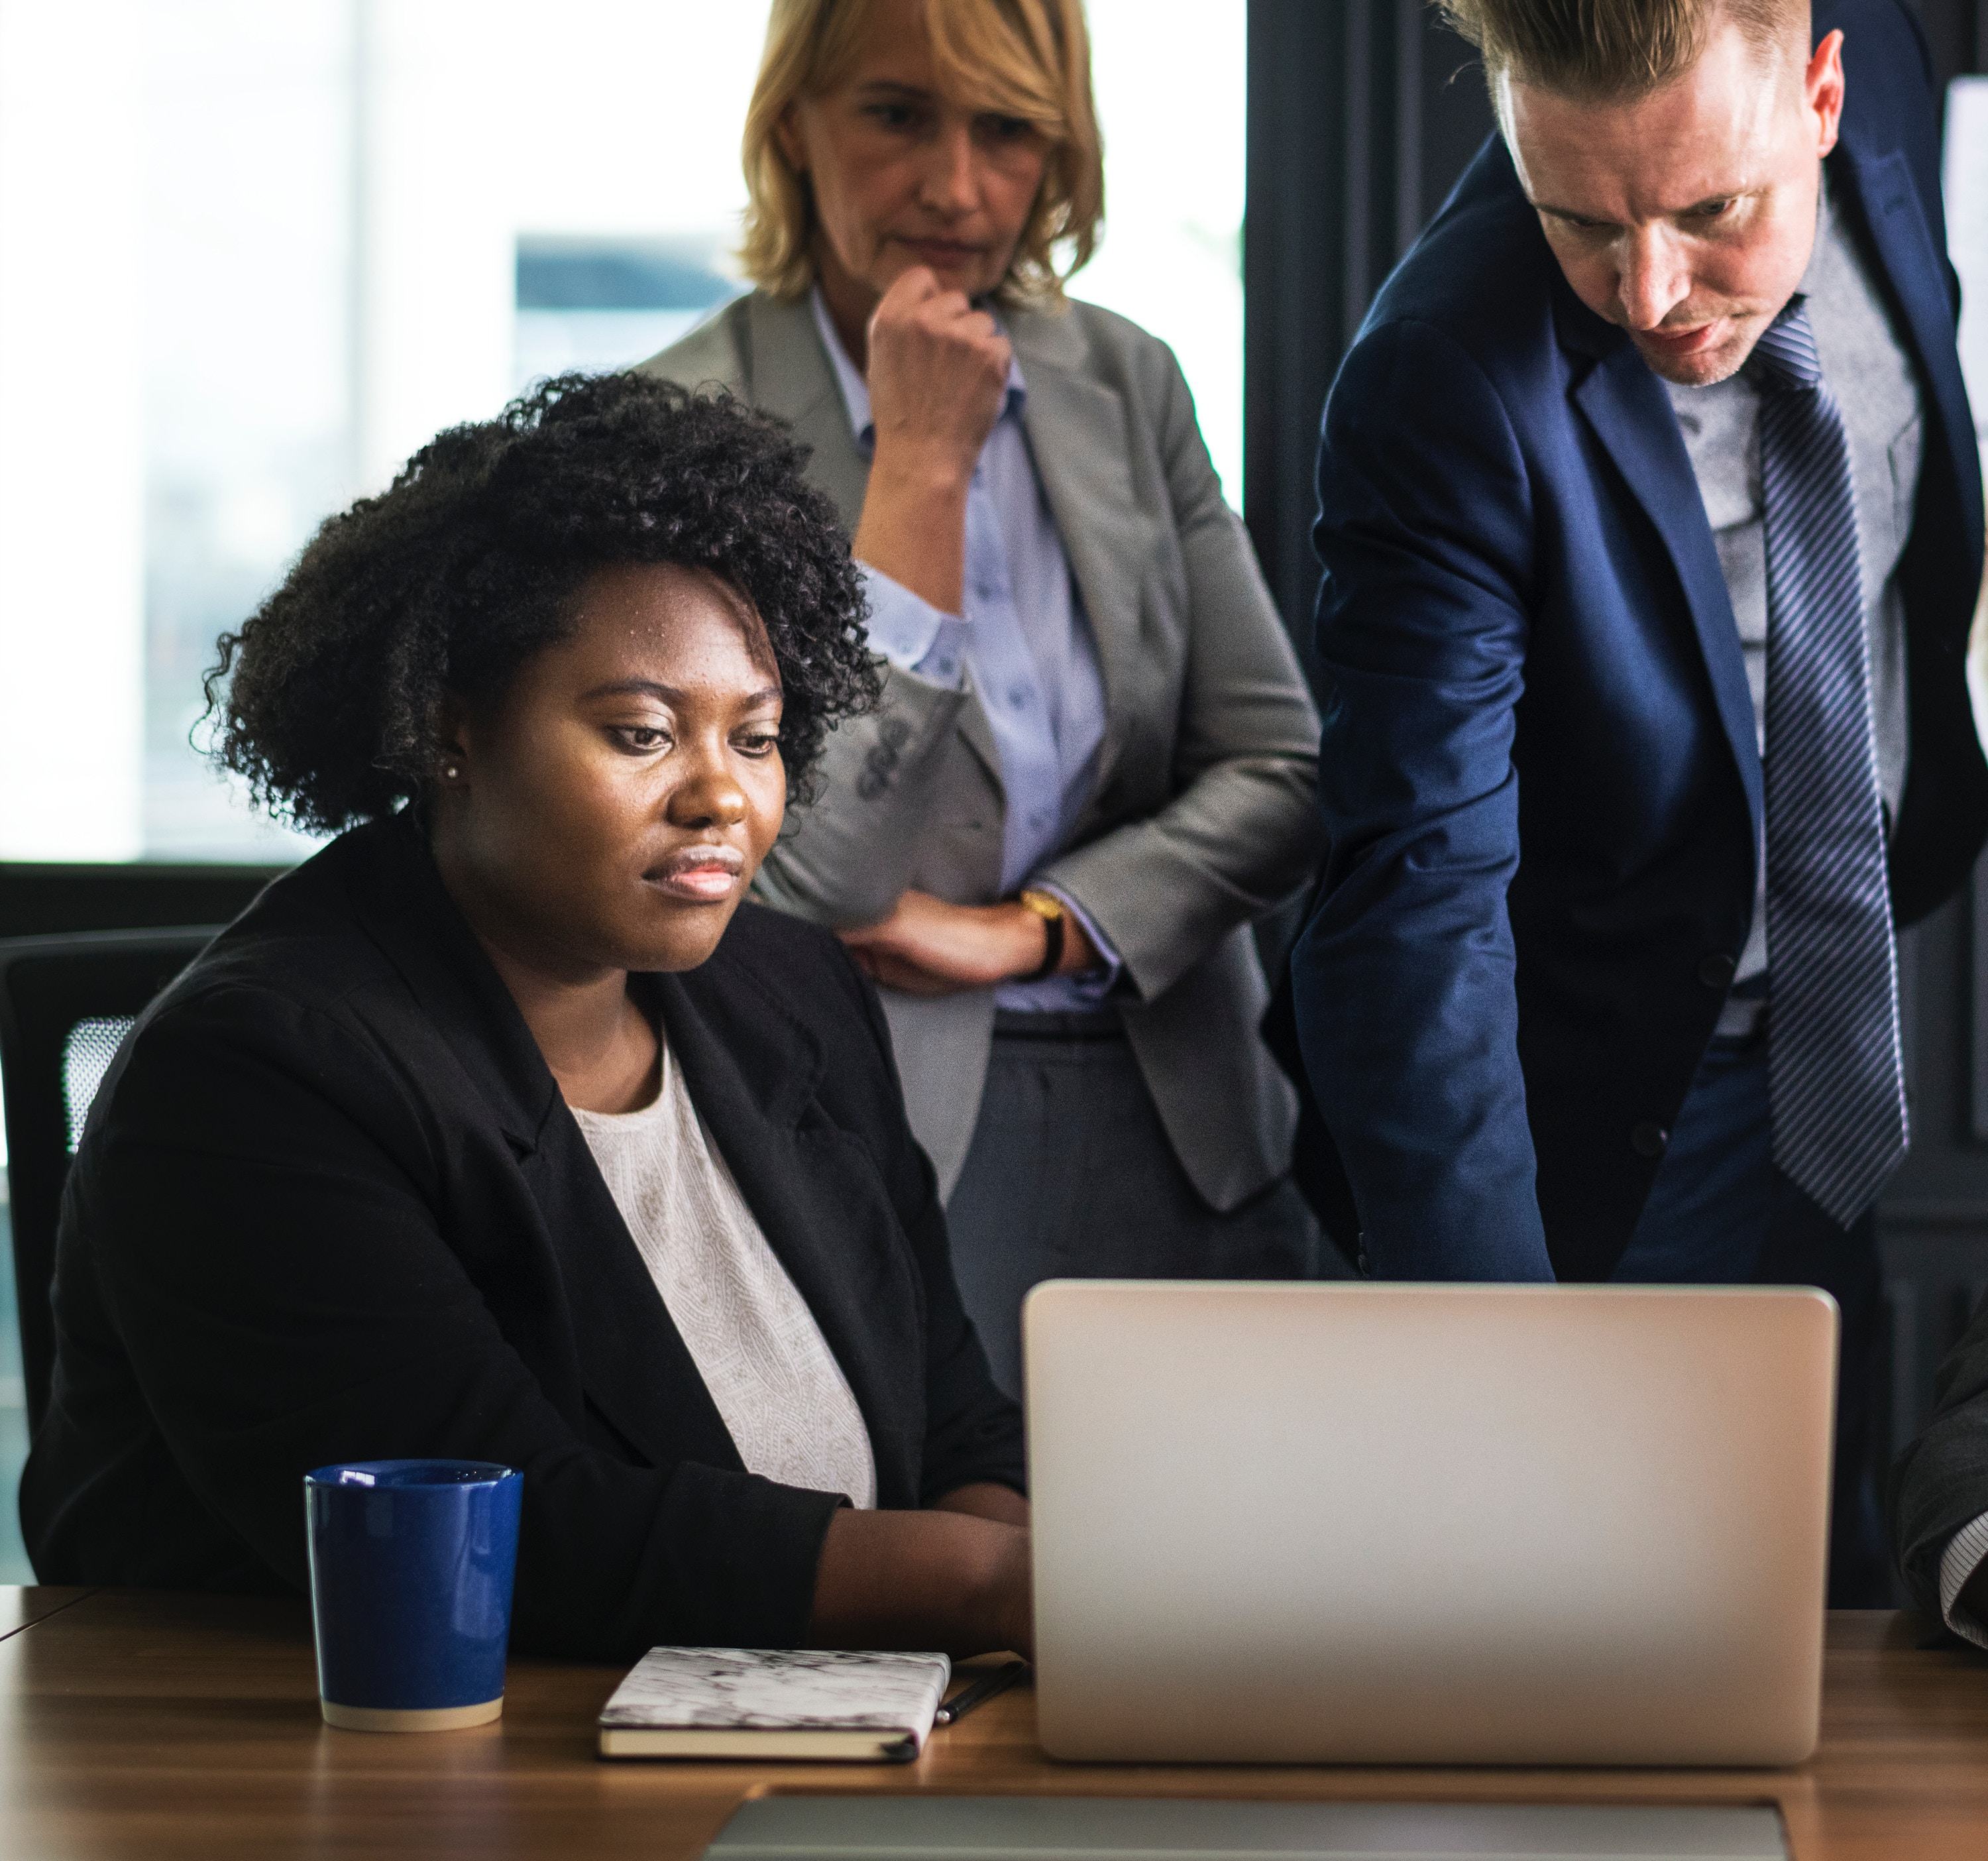 Three people in business suits look at a laptop screen on a desk